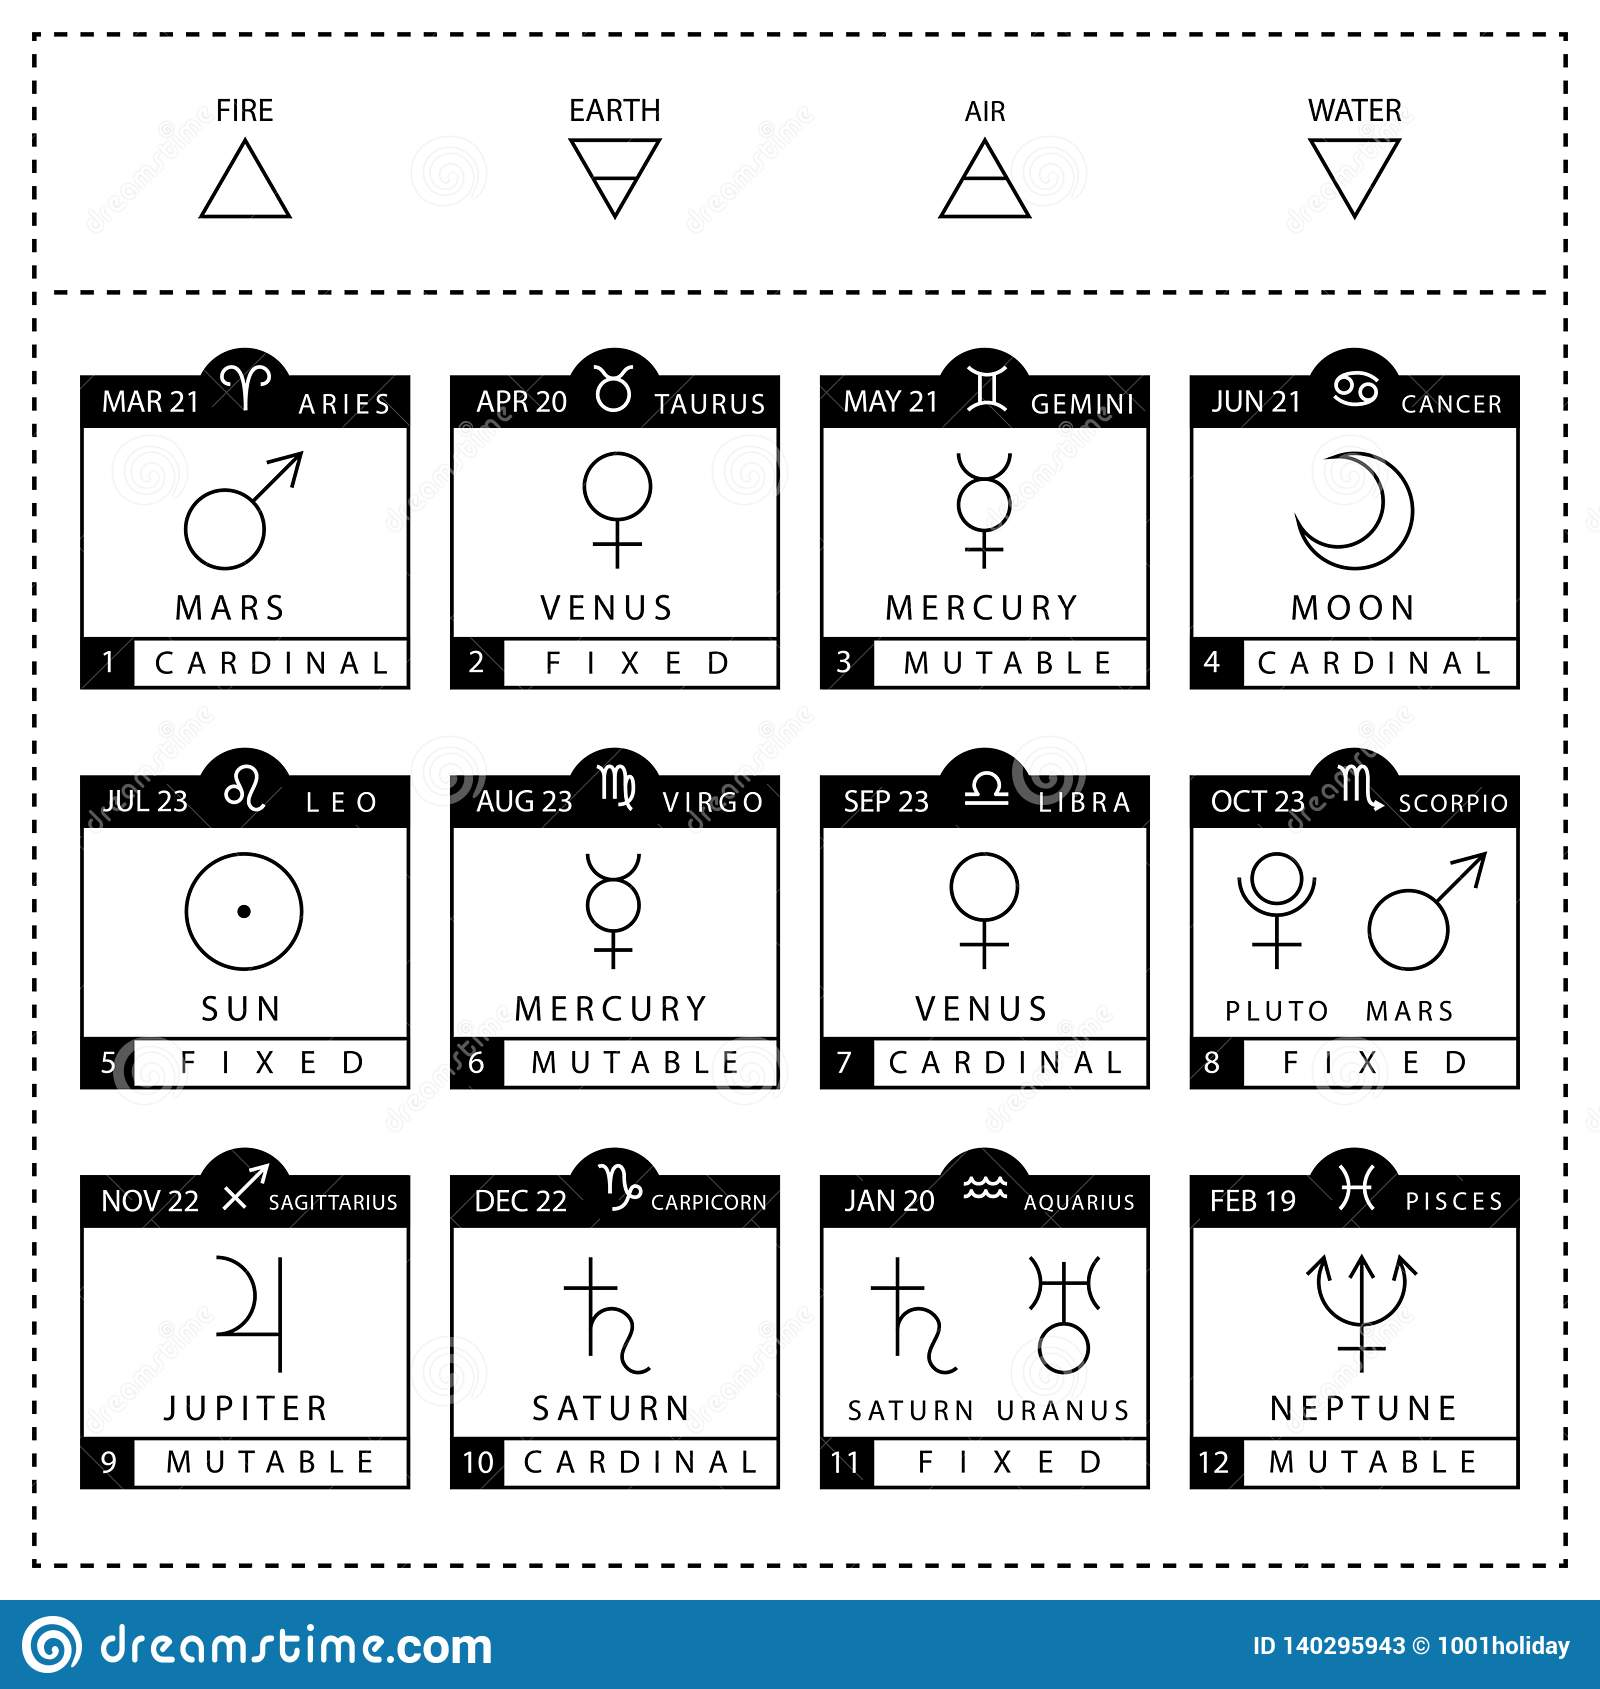 astrological sign charts